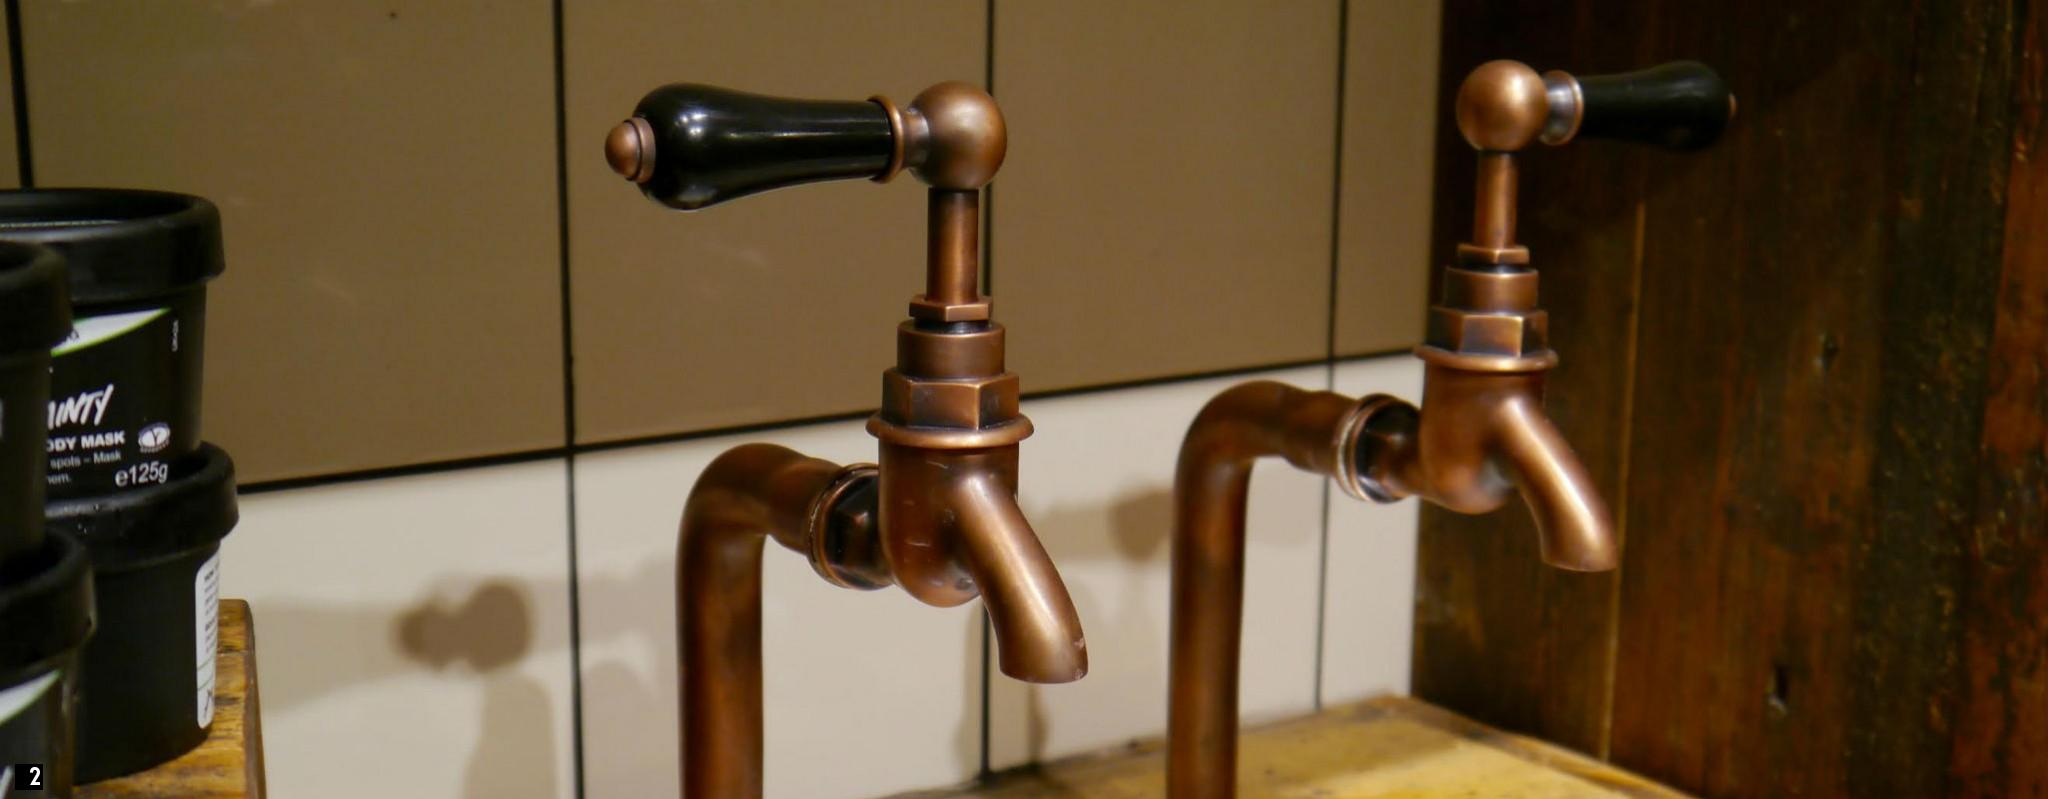 Chadder French Copper Kitchen Bib Taps , Black Levers Copper faucet bathroom